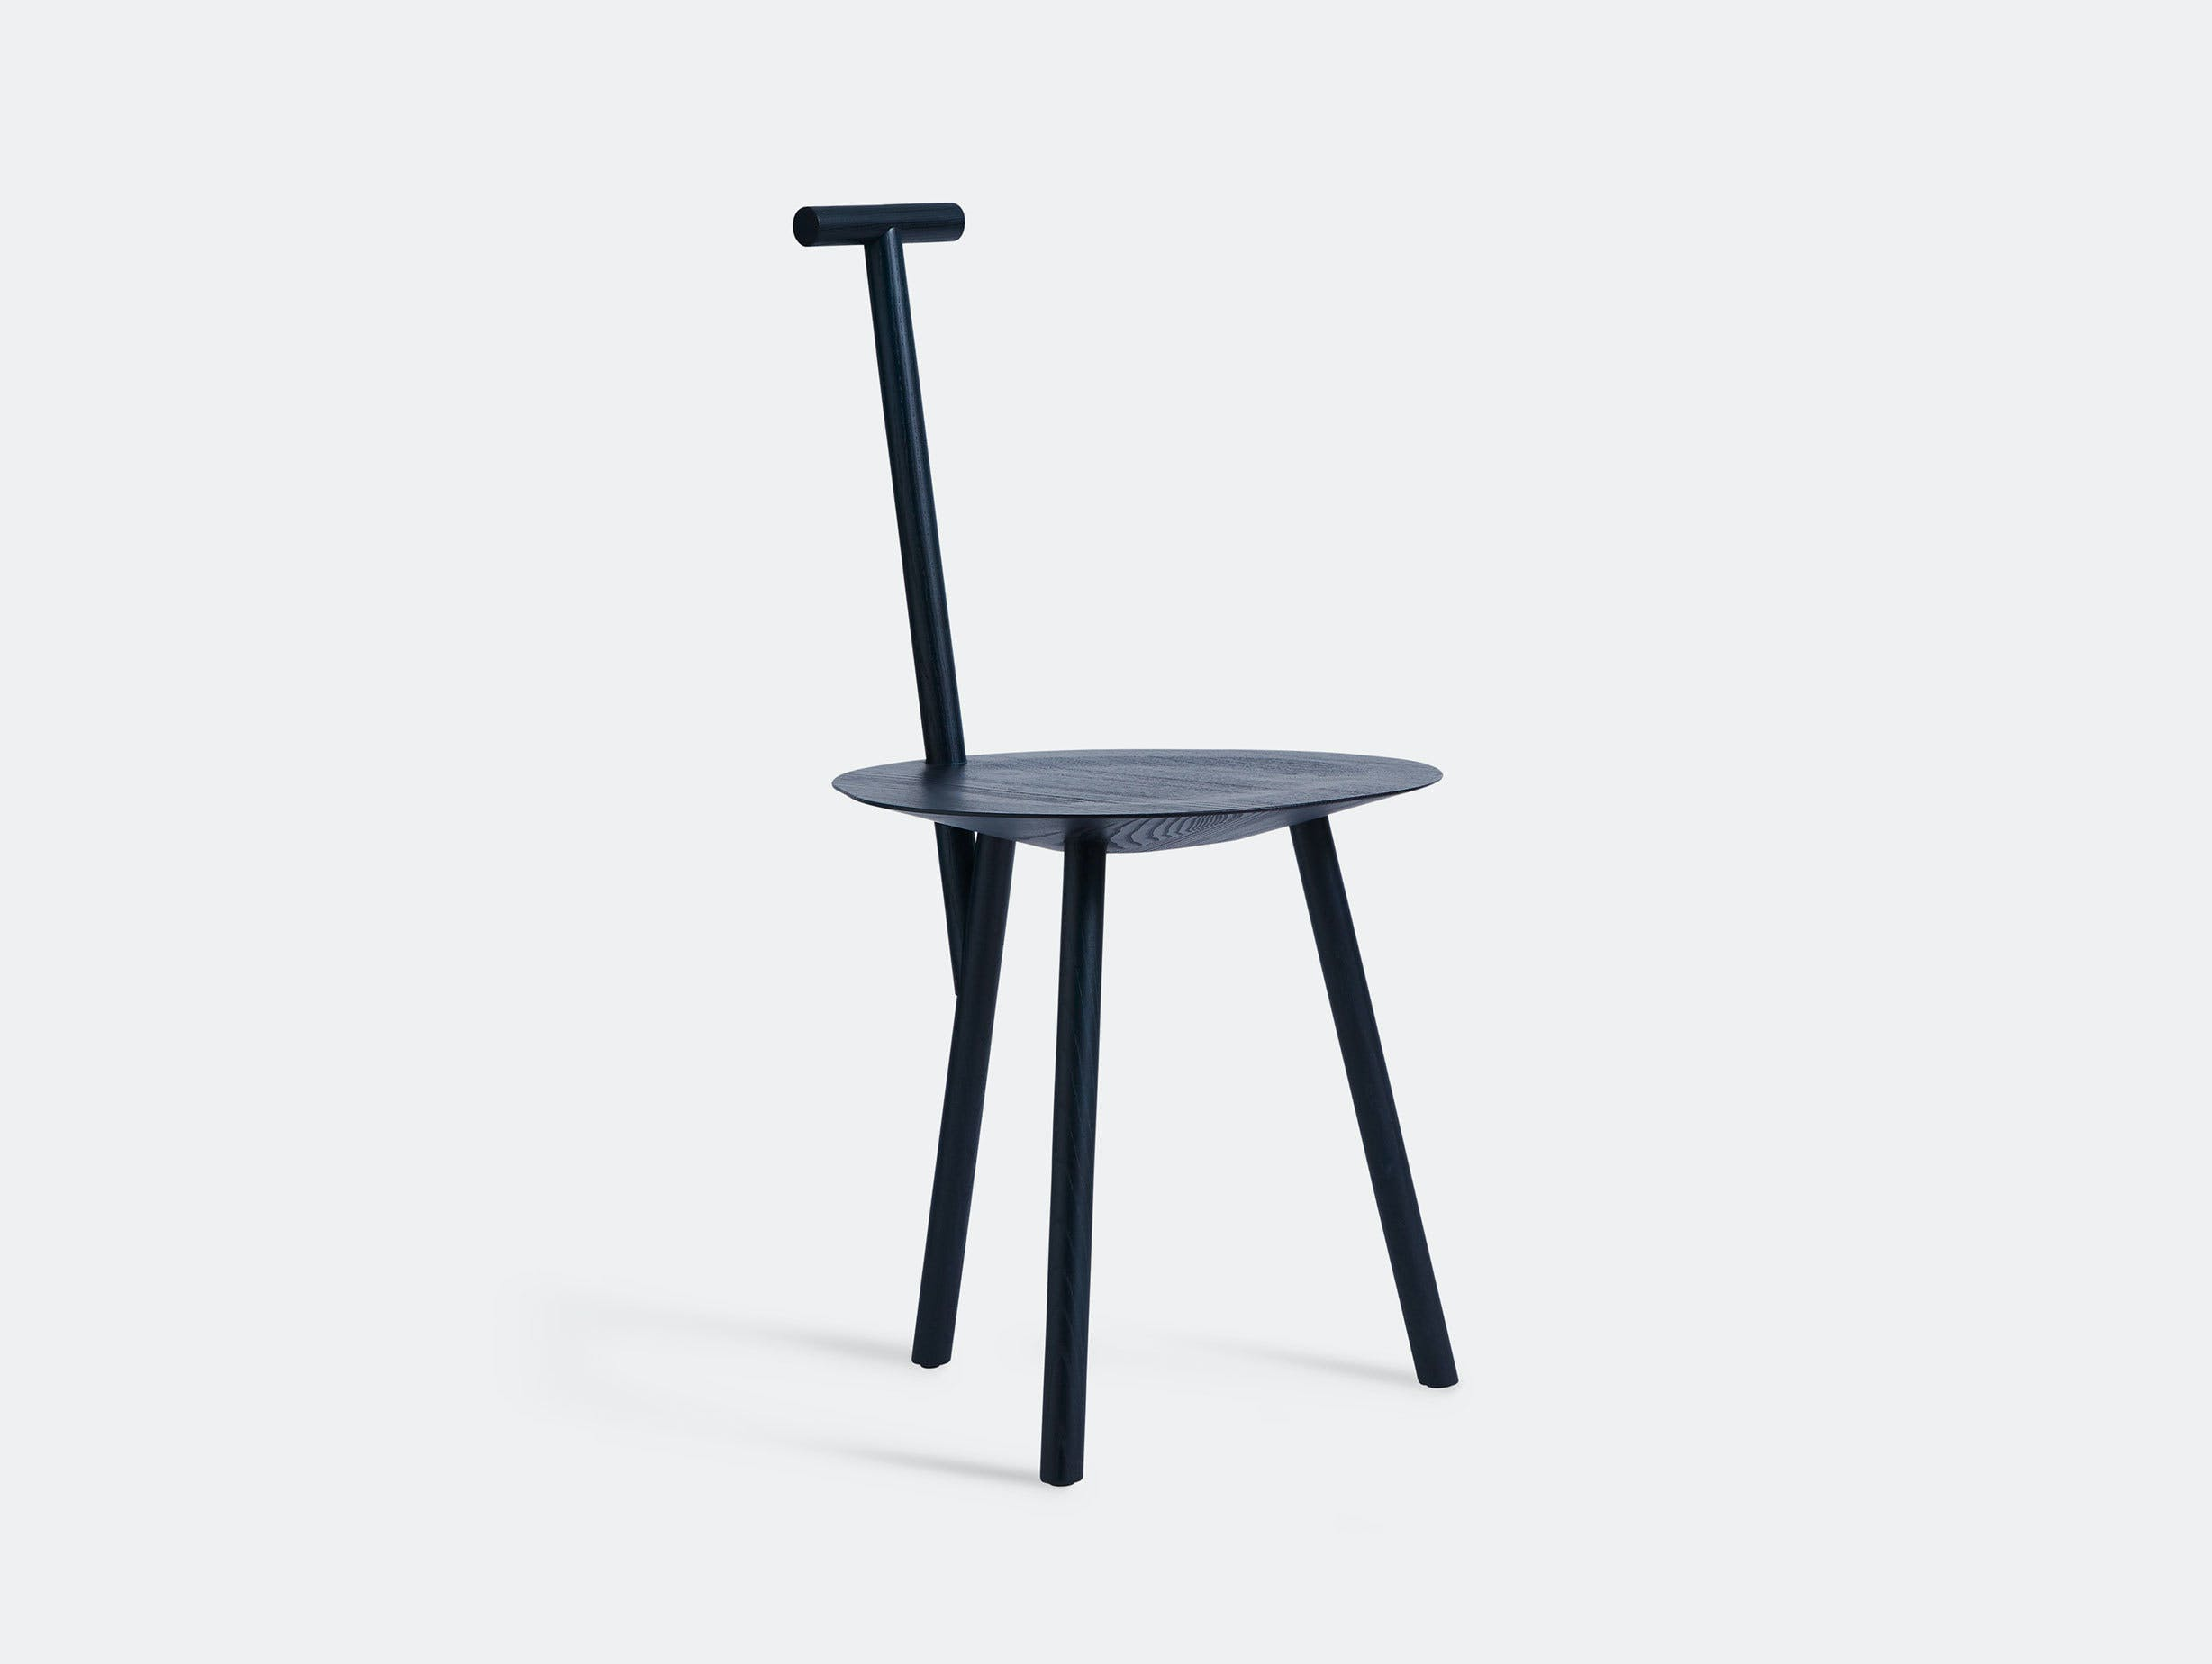 Spade Chair image